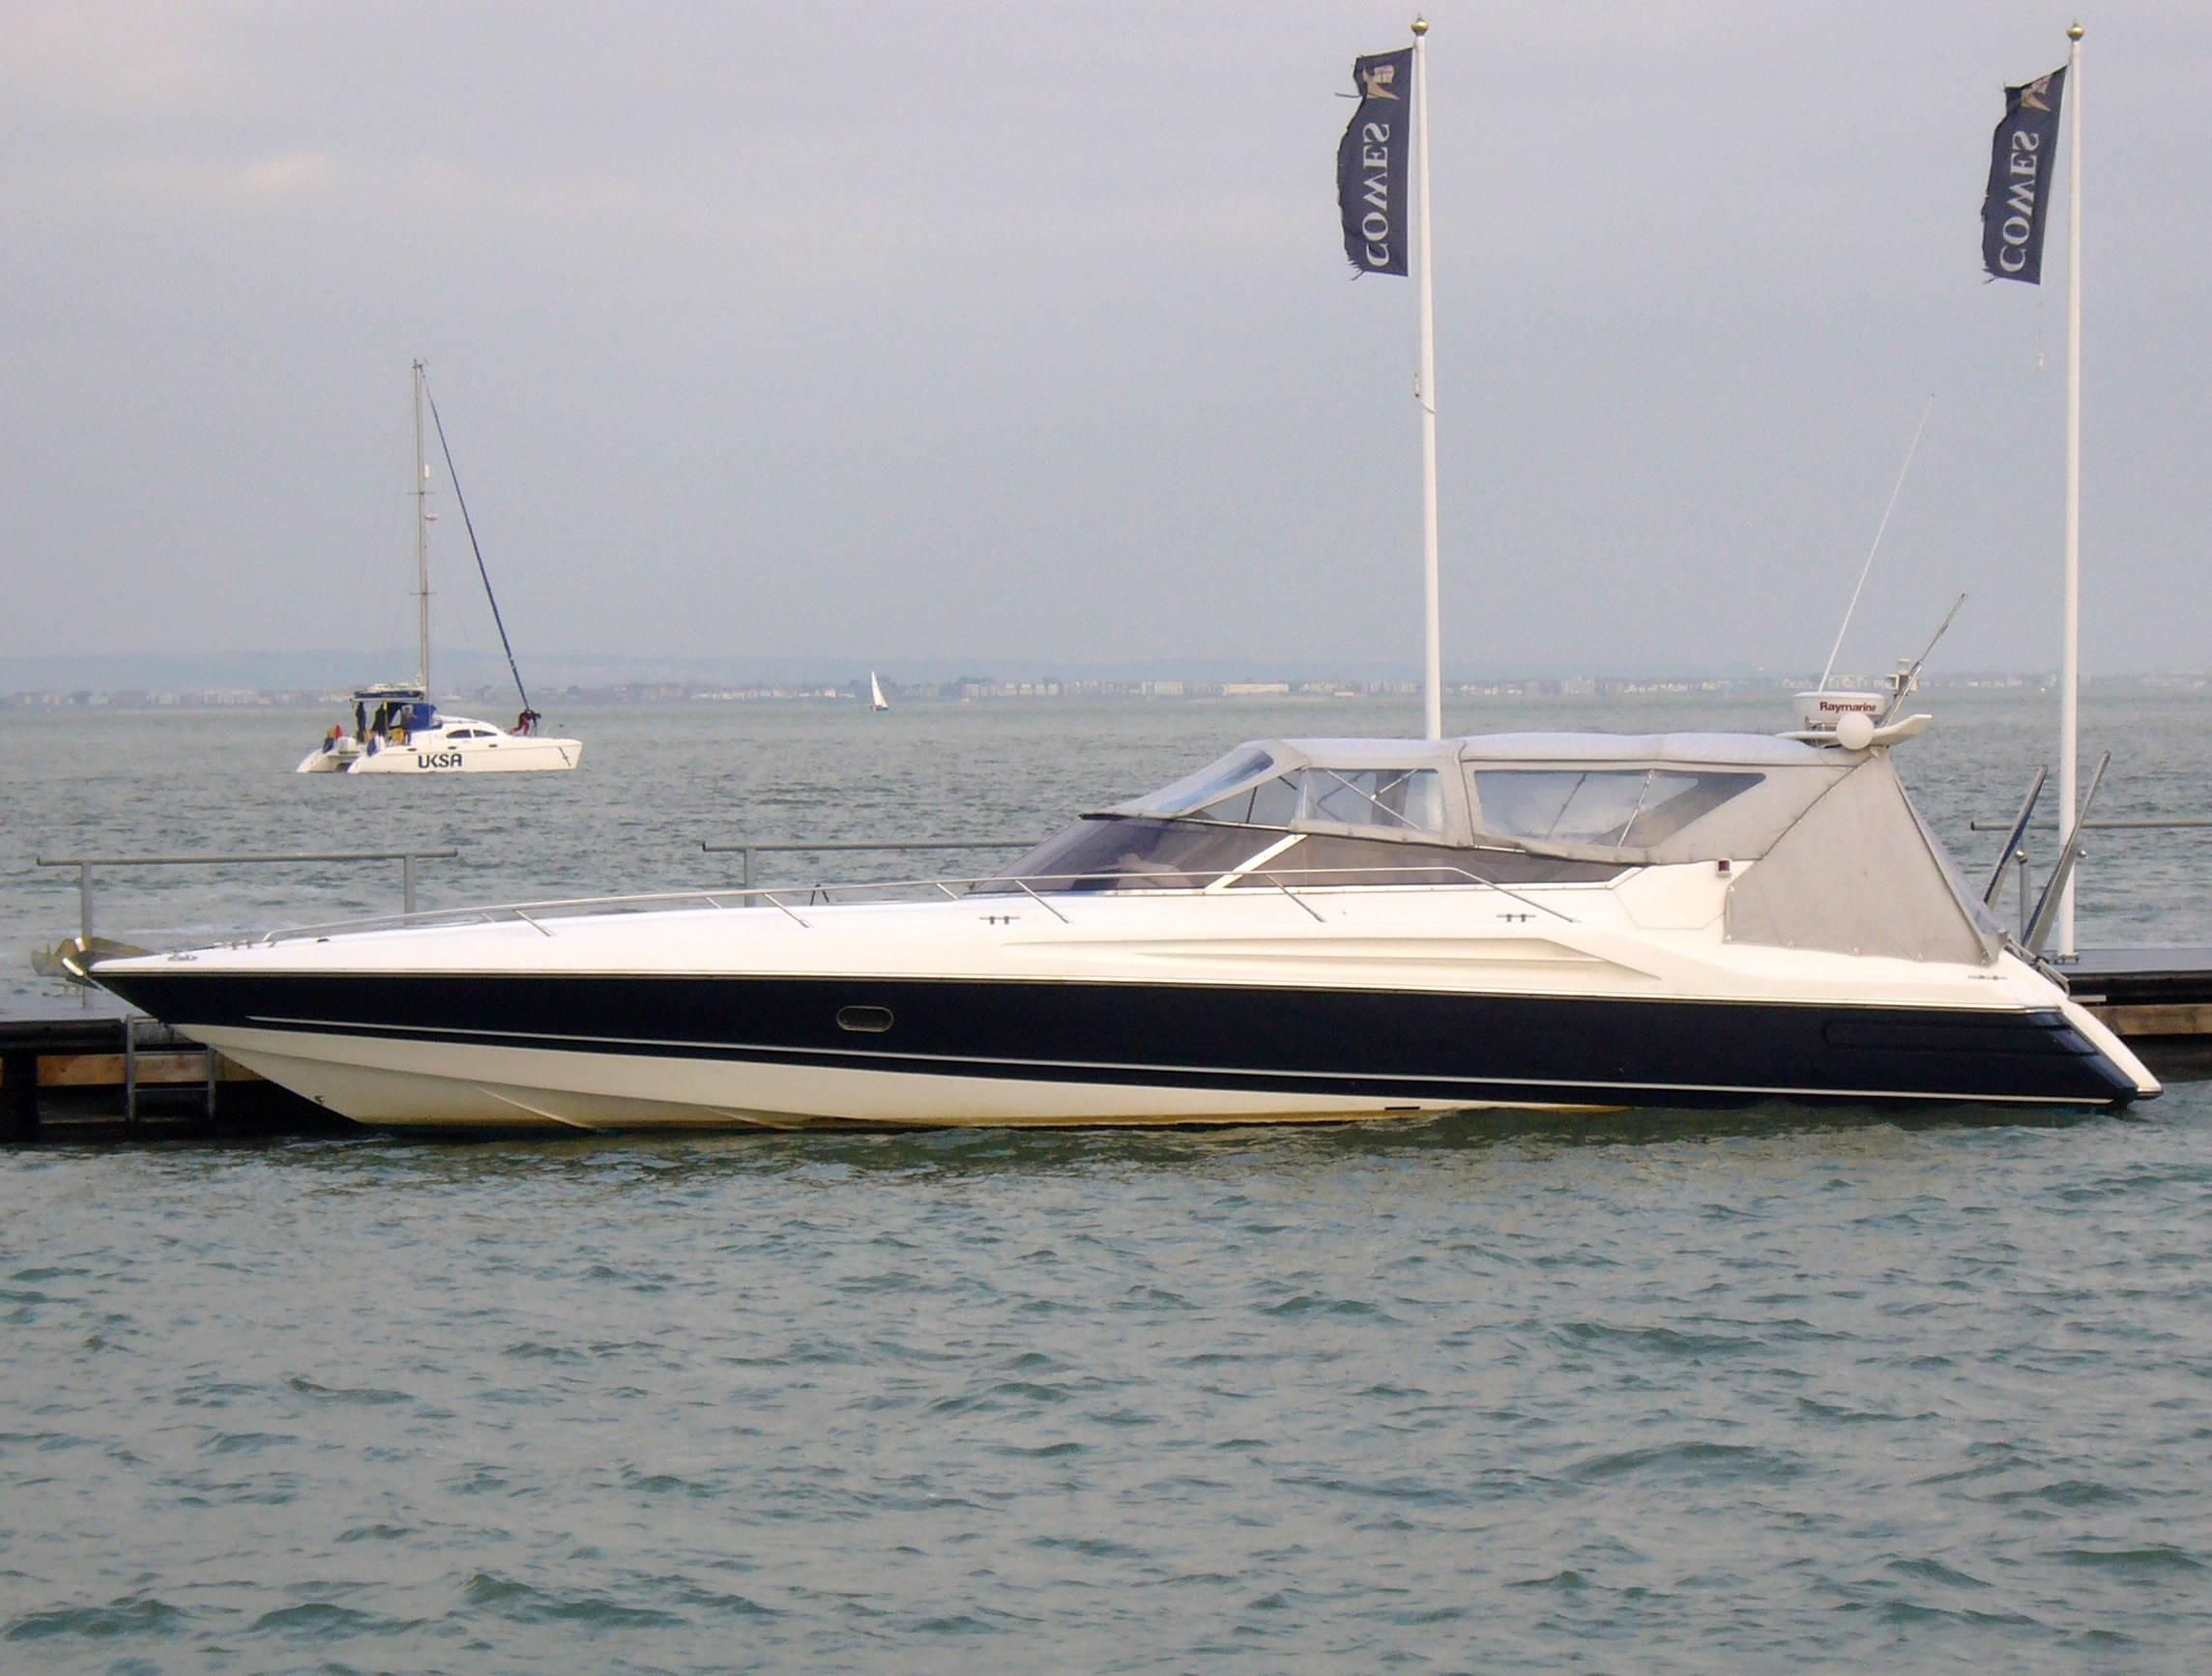 Beaulieu United Kingdom  city photos : Sunseeker Apache 45, Beaulieu, Hampshire, United Kingdom